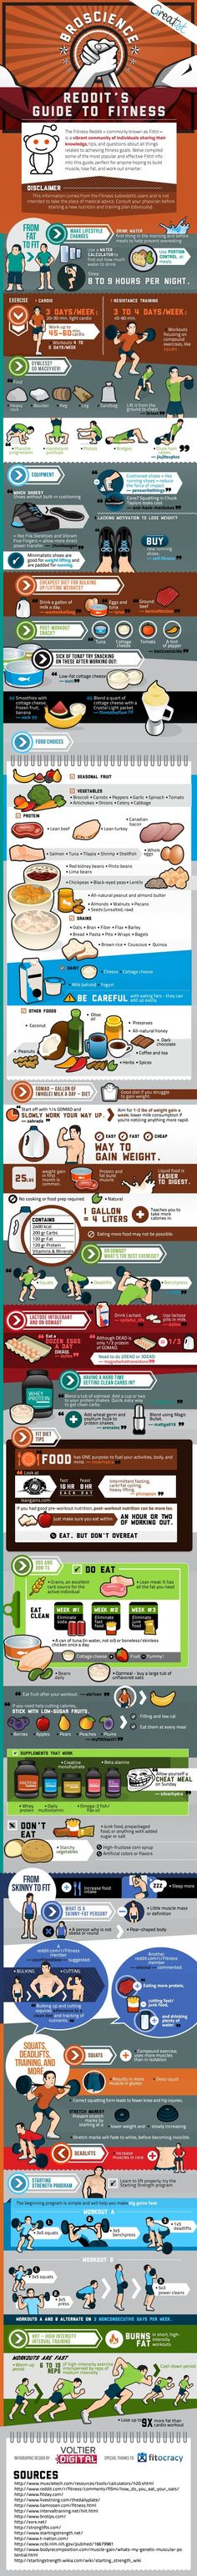 Reddit's Guide to #Fitness | #Infographic #Health #Lifting